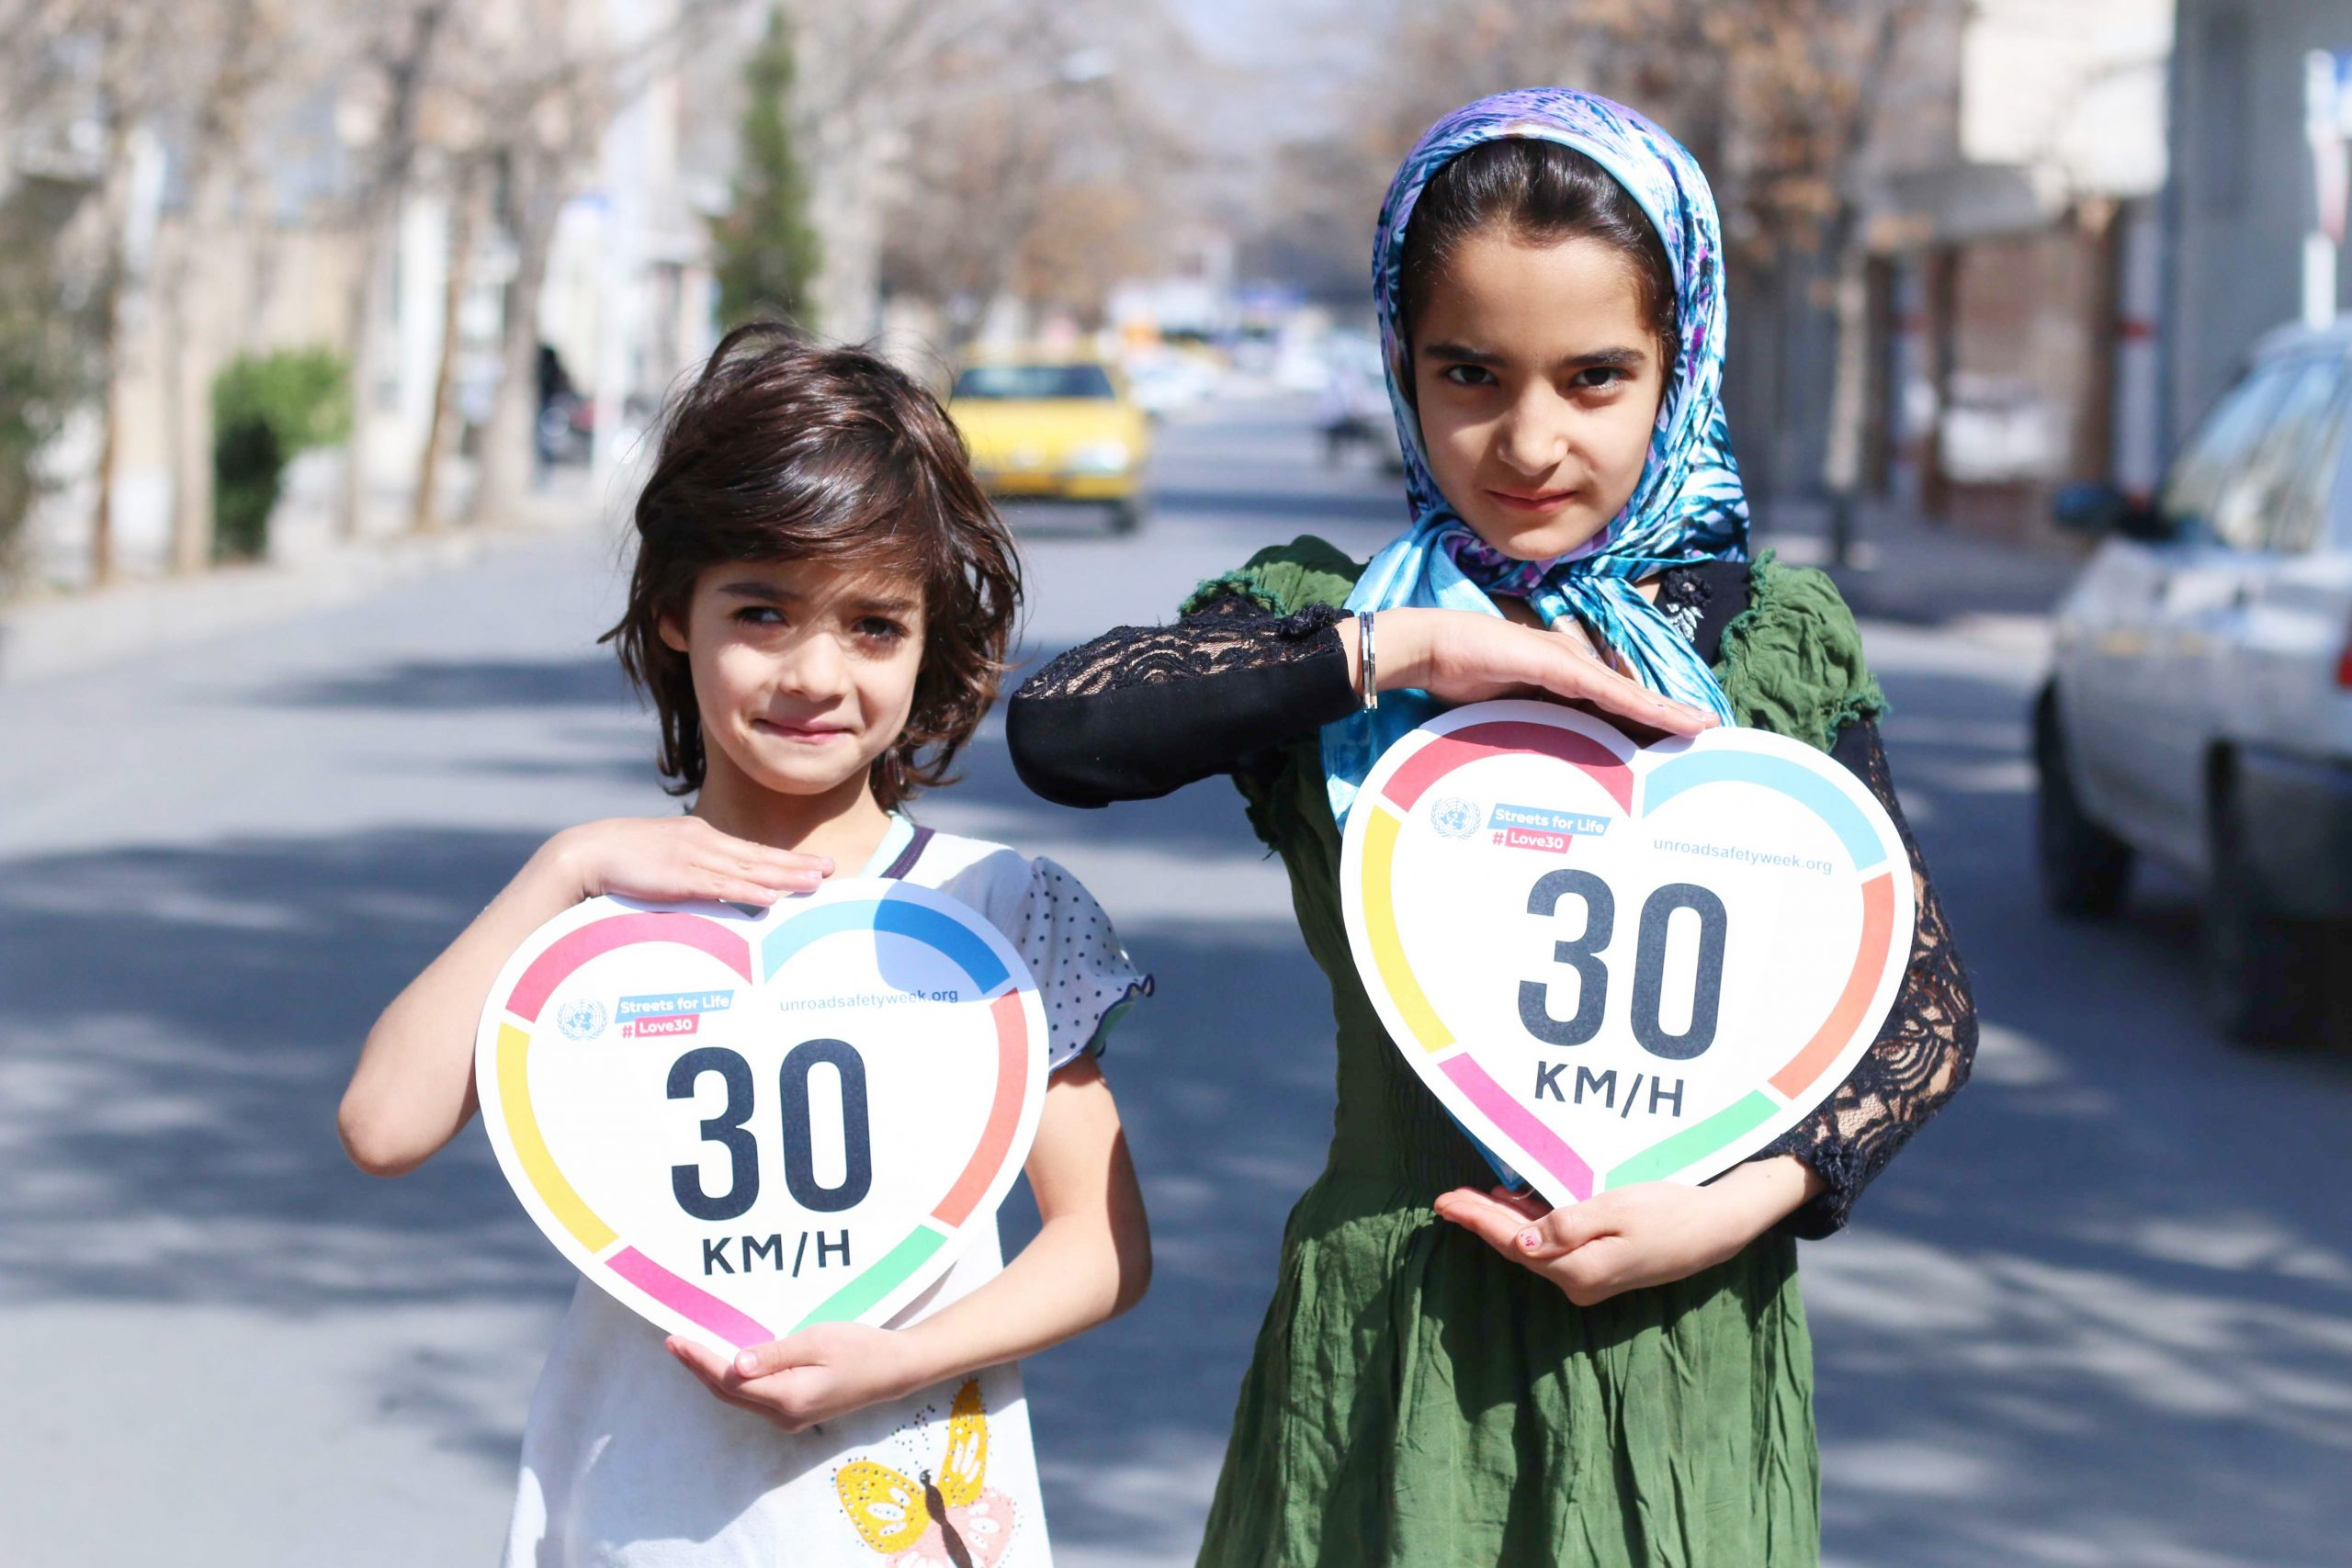 UN Global Road Safety Week - Global Alliance of NGOs for Road Safety